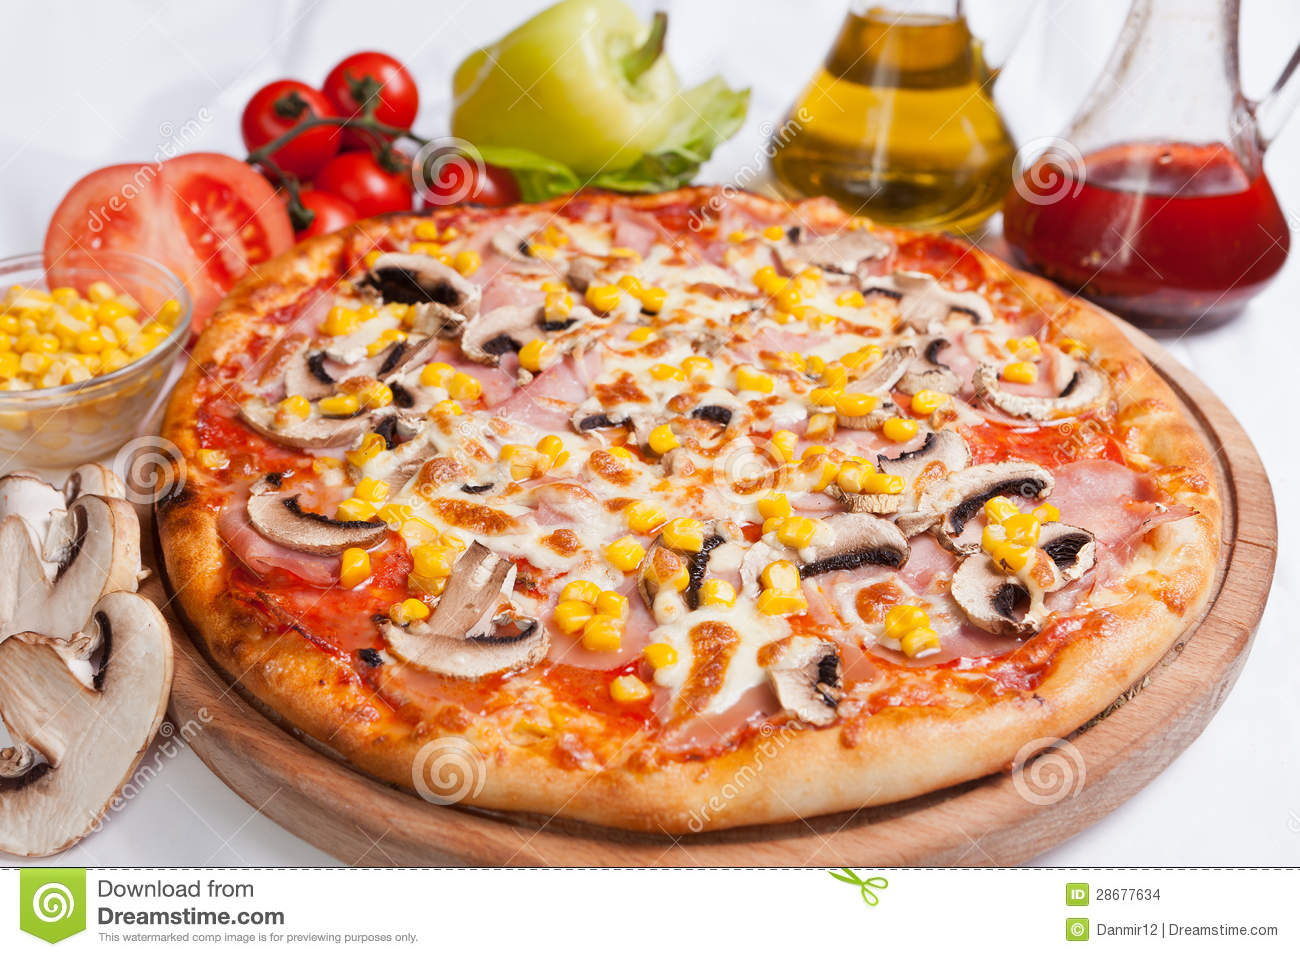 pizza milano with corn and mushrooms stock photo image of fast hardy 28677634. Black Bedroom Furniture Sets. Home Design Ideas